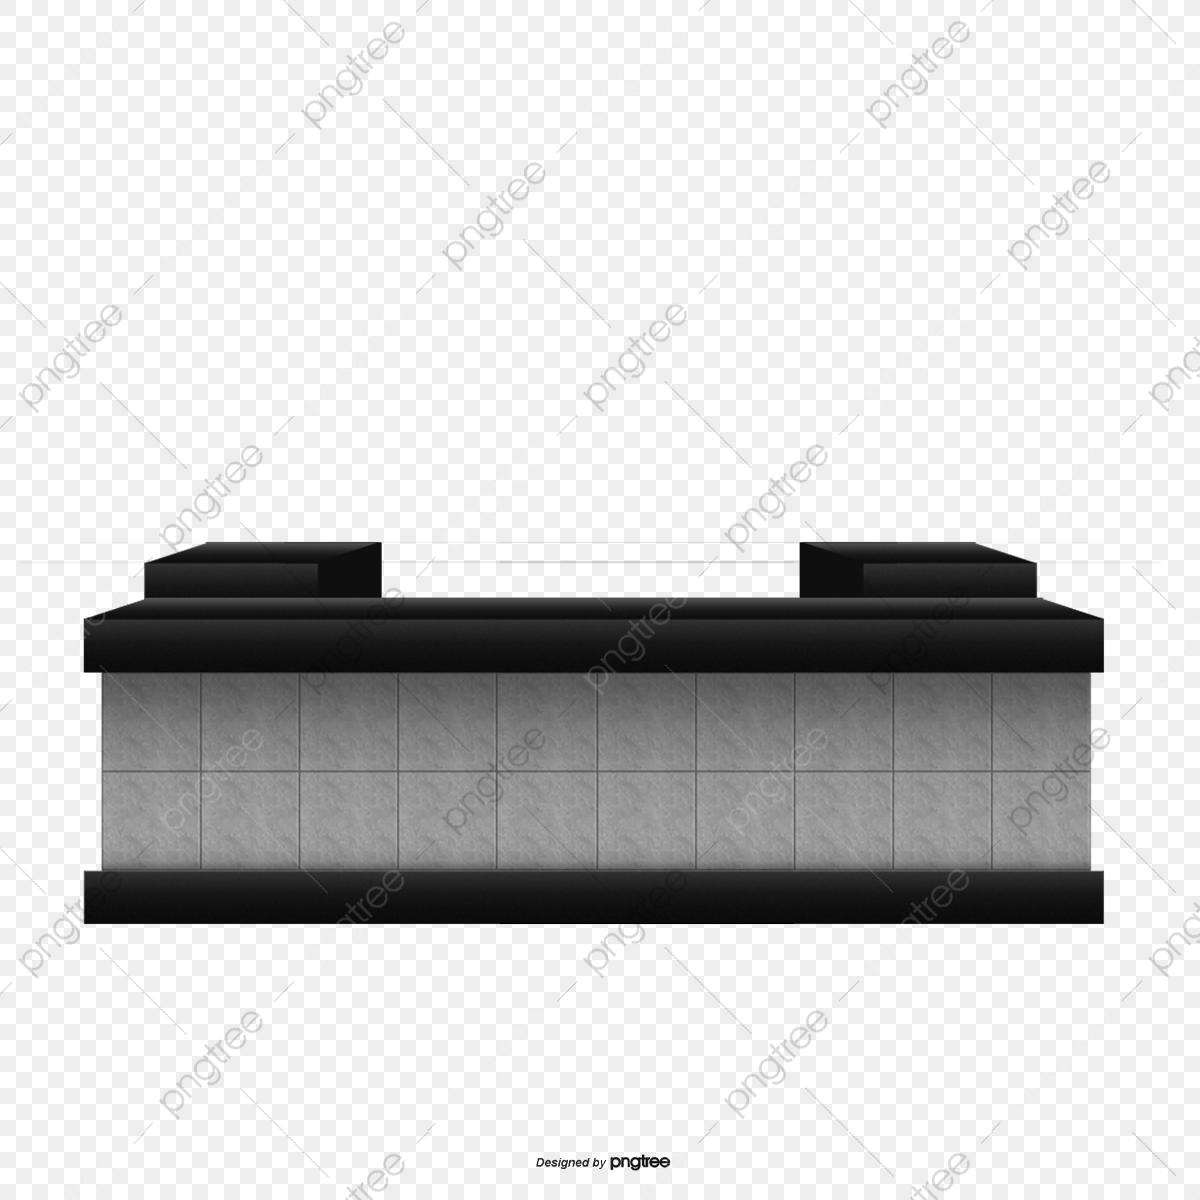 Bar, Wood, Counter PNG Transparent Clipart Image and PSD File for.